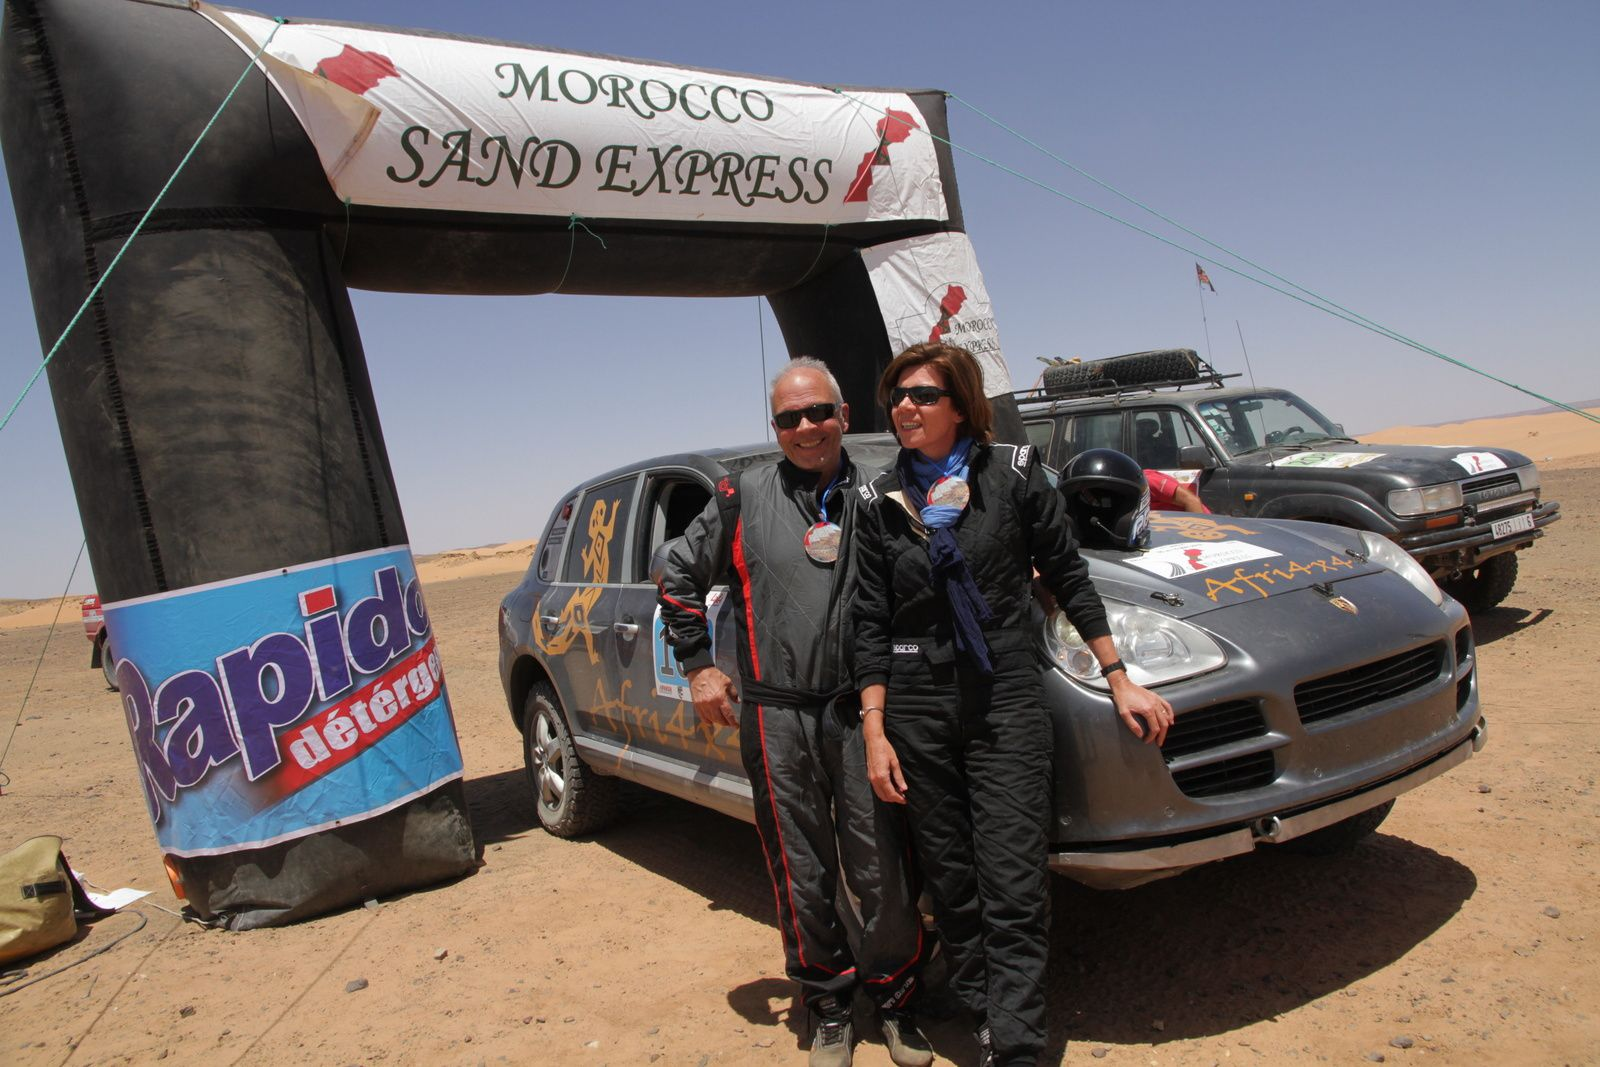 Morocco Sand Express 2019, Gueules de Champions